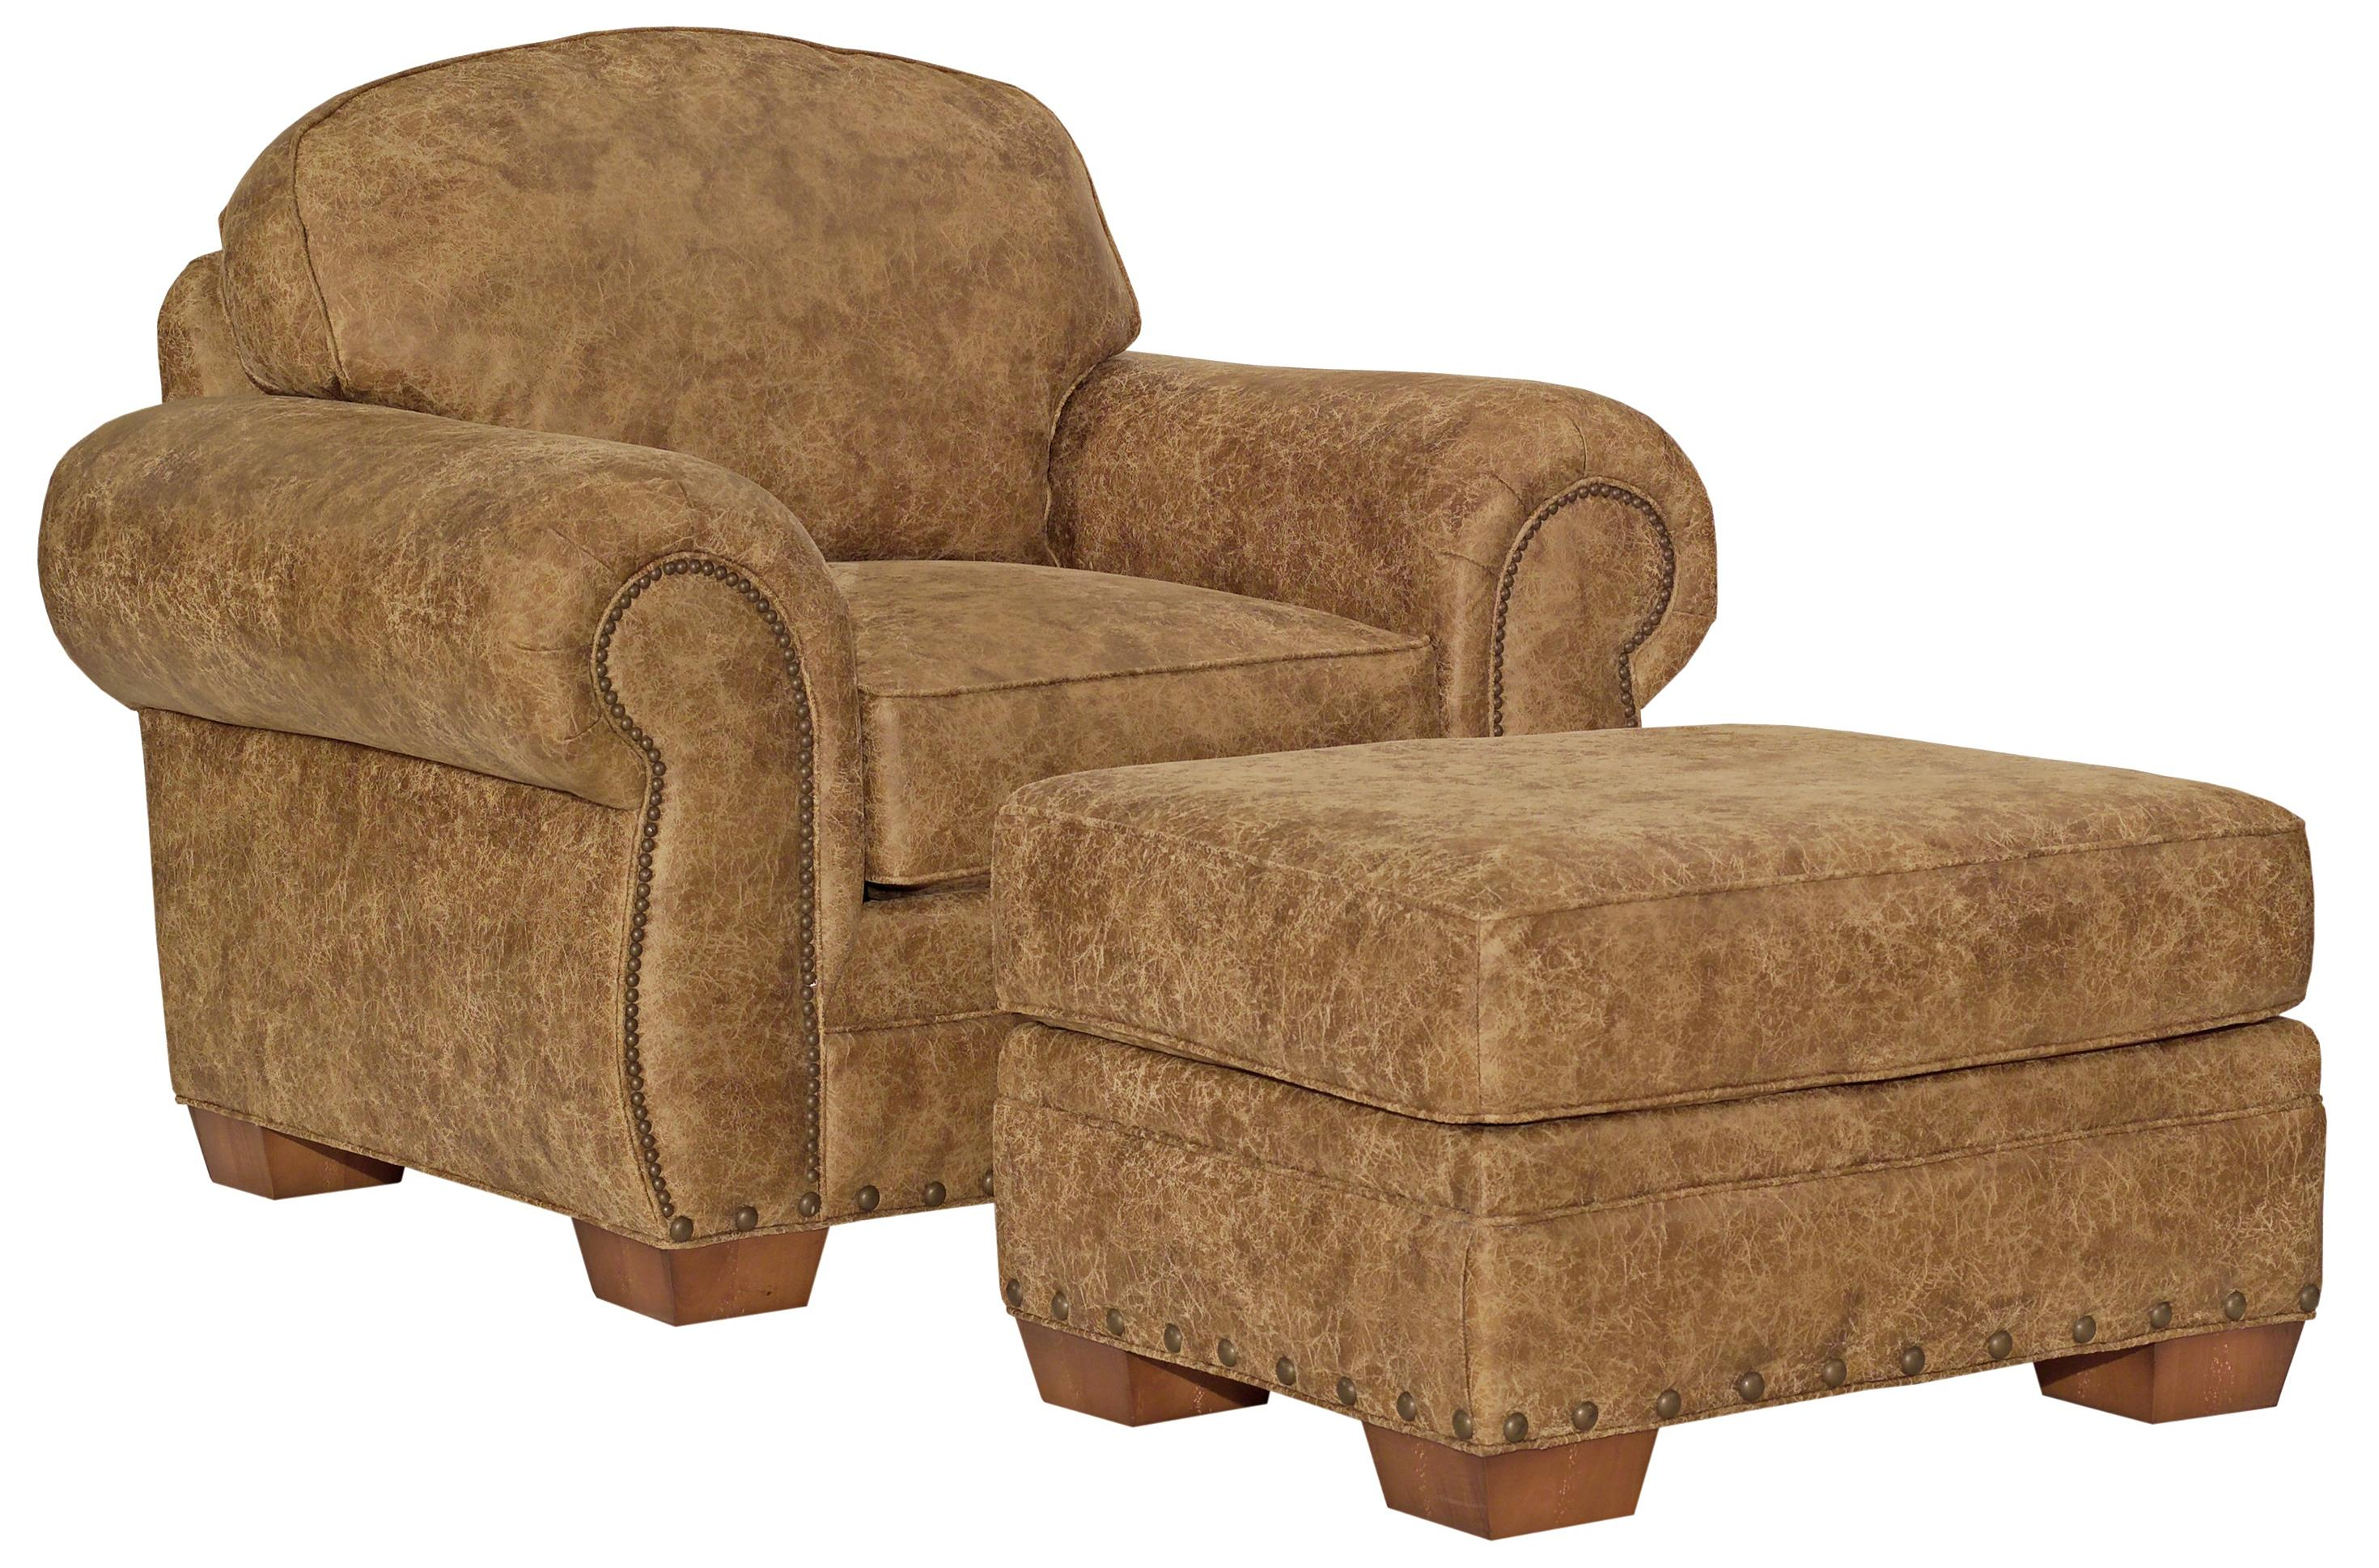 Broyhill Furniture Cambridge Casual Style Chair and Ottoman - Item Number: 5054-0+5